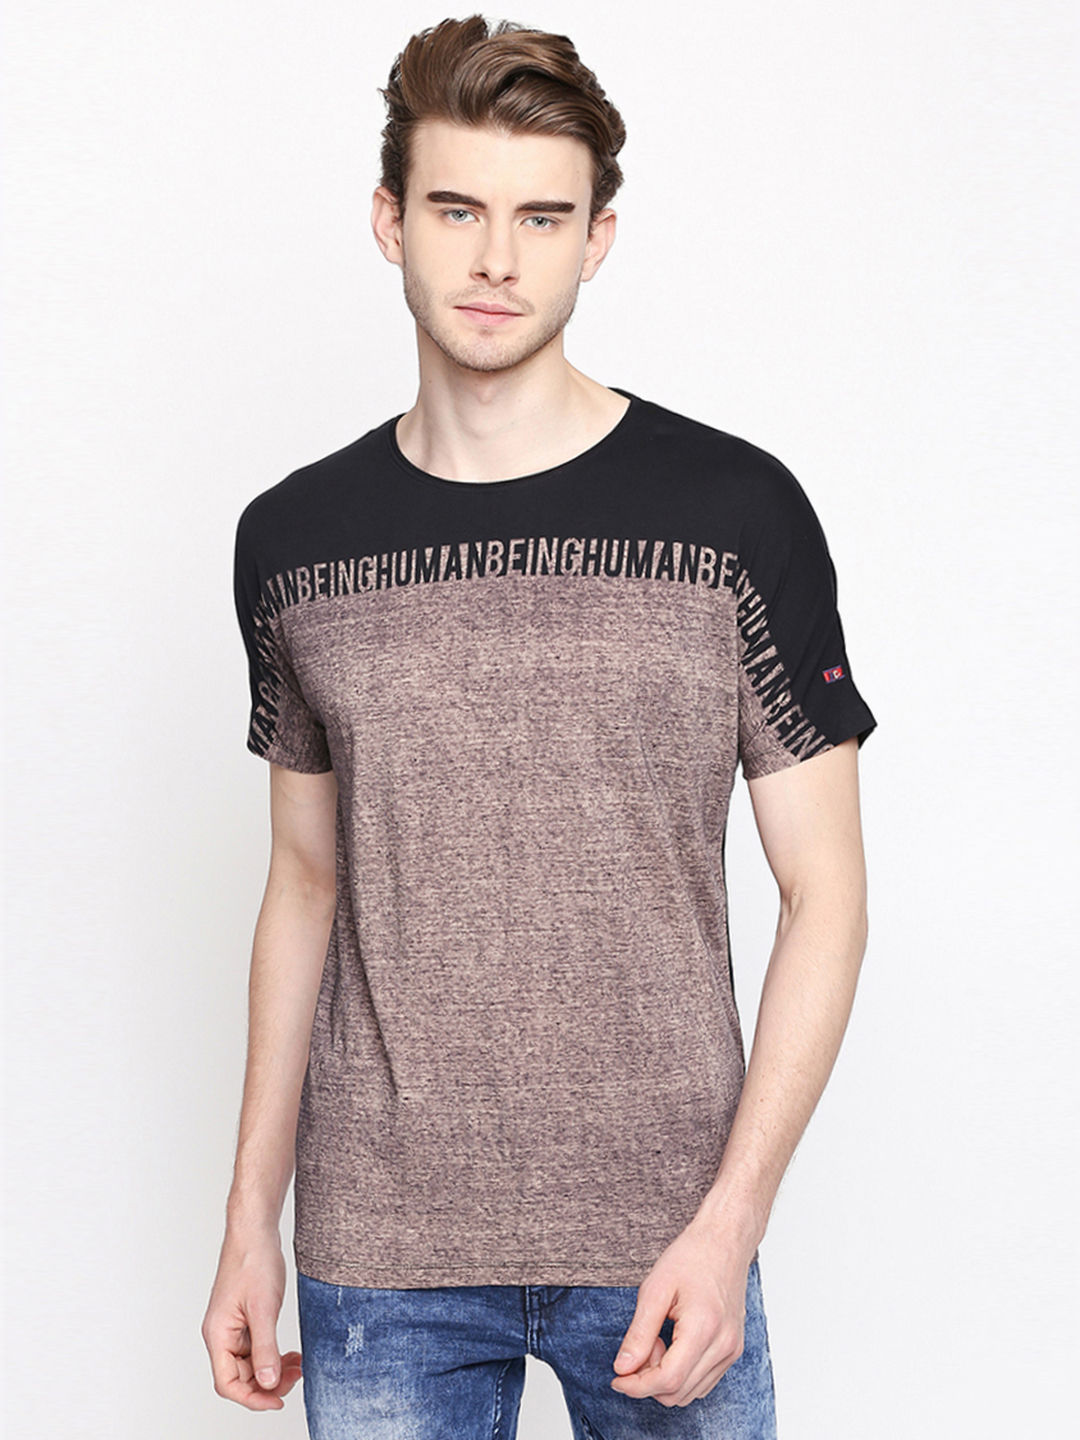 BLACK AND BROWN MELANGE T-SHIRT